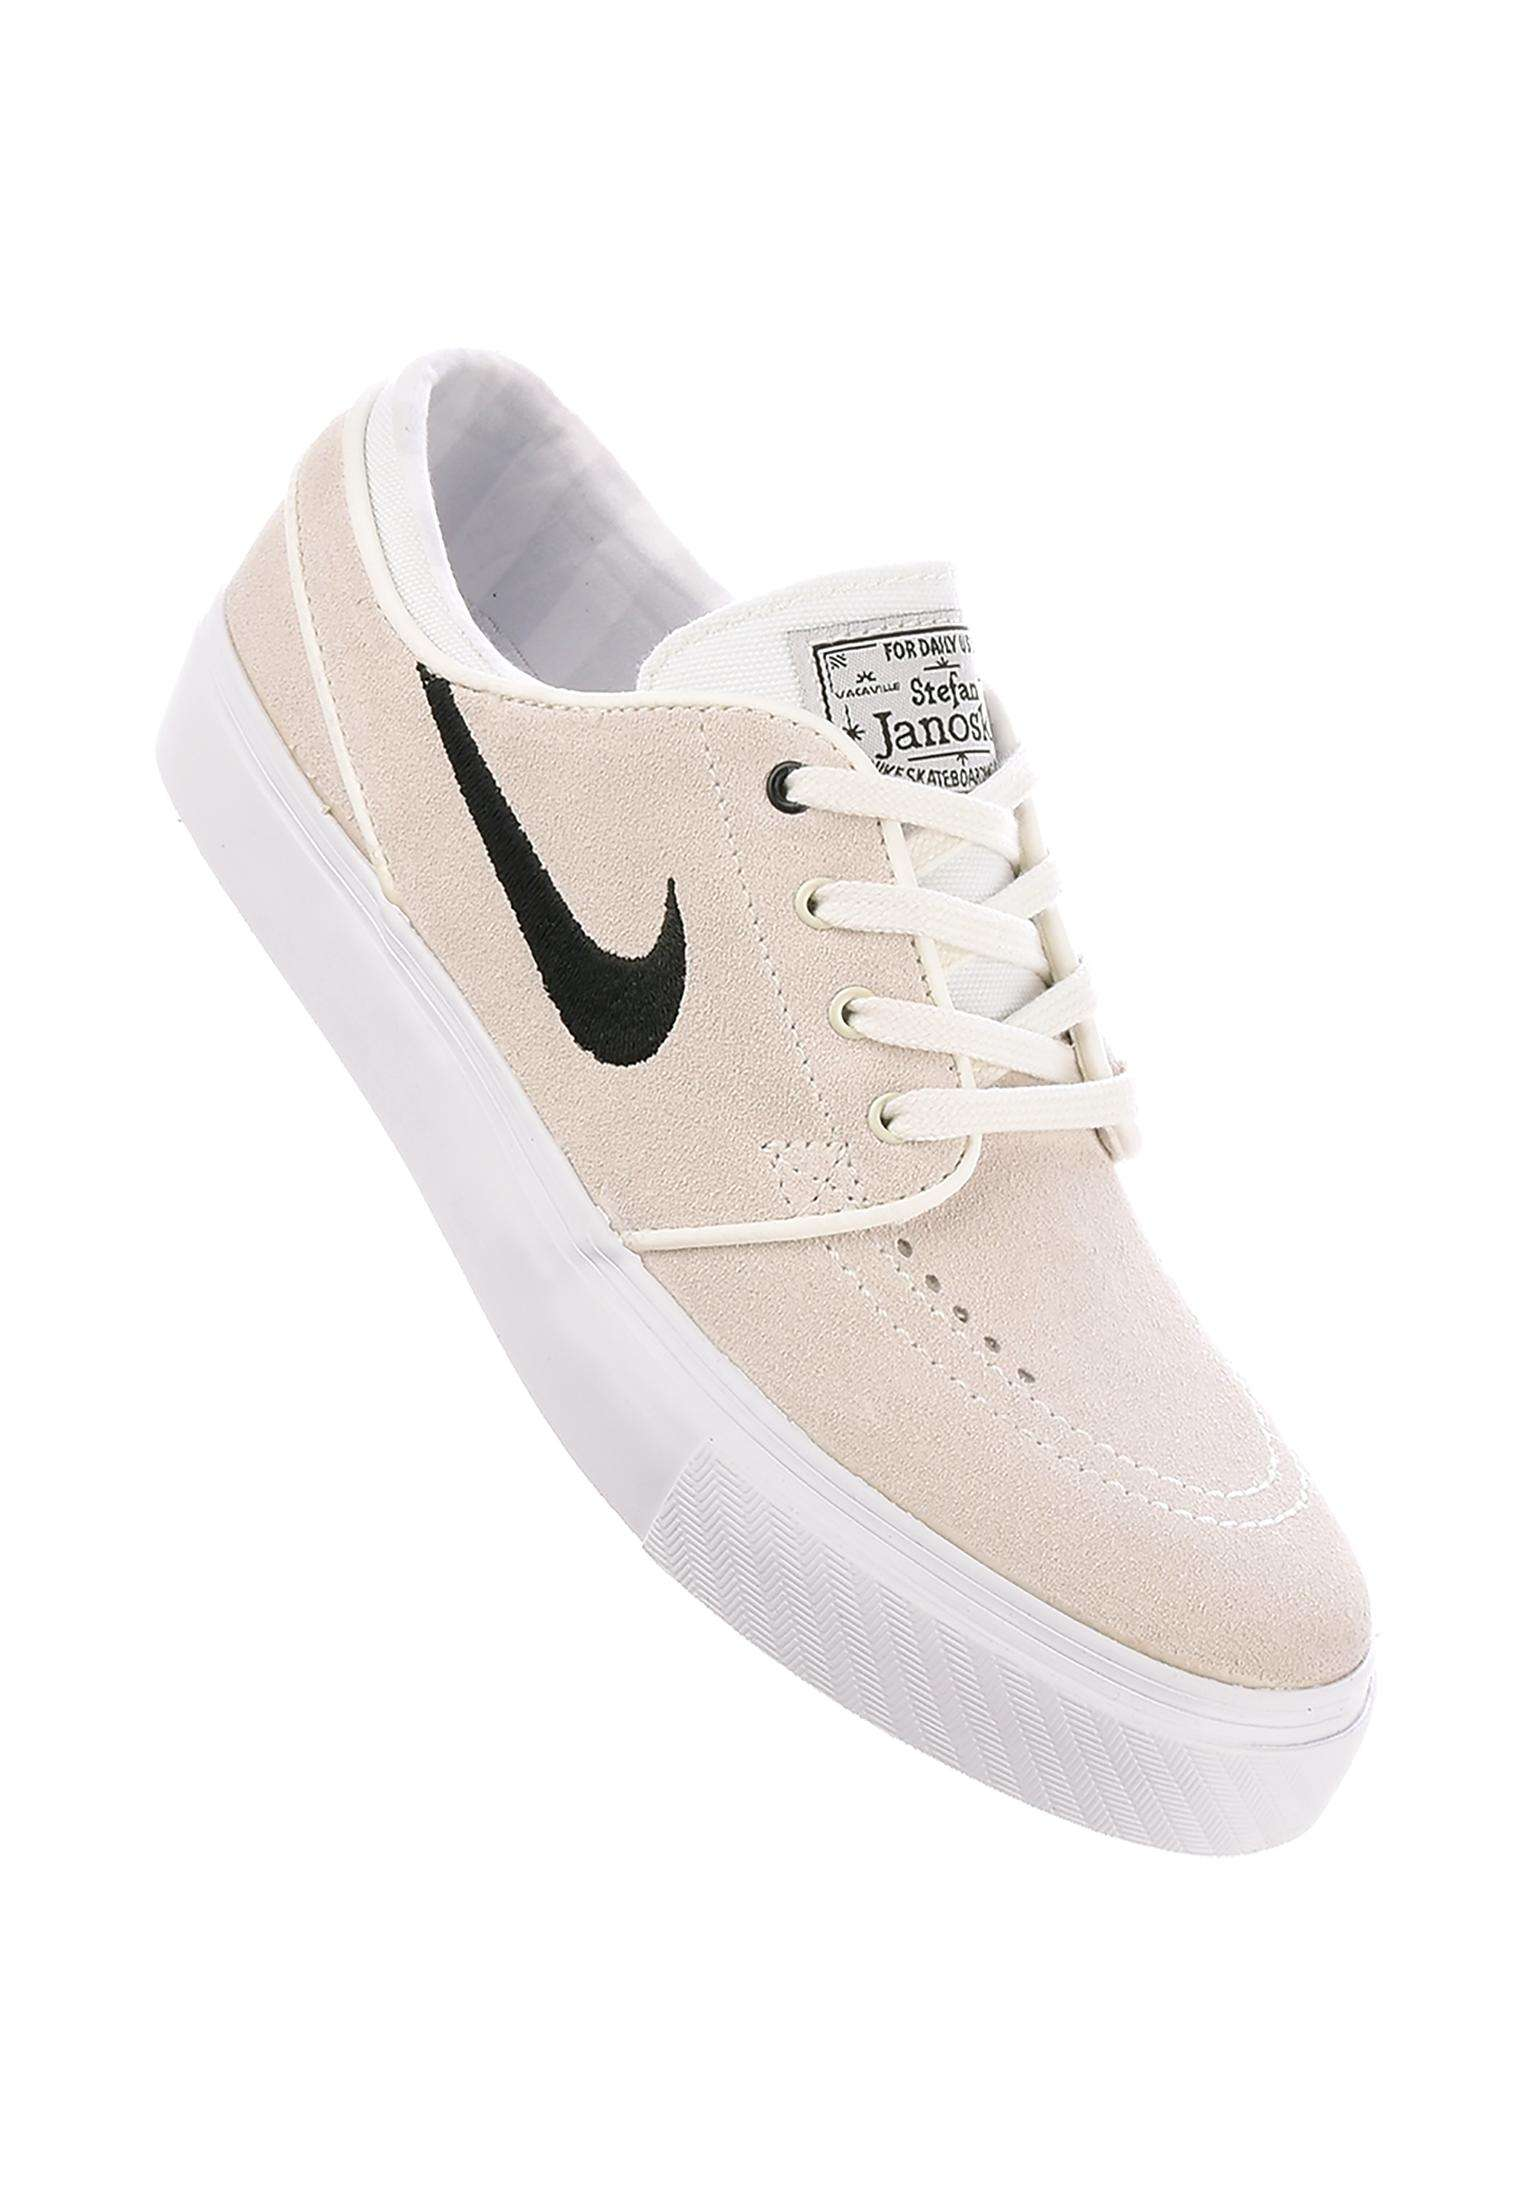 34305272ff1fe Zoom Stefan Janoski Wmn Nike SB All Shoes in summitwhite-black-pureplatinum  for Women | Titus